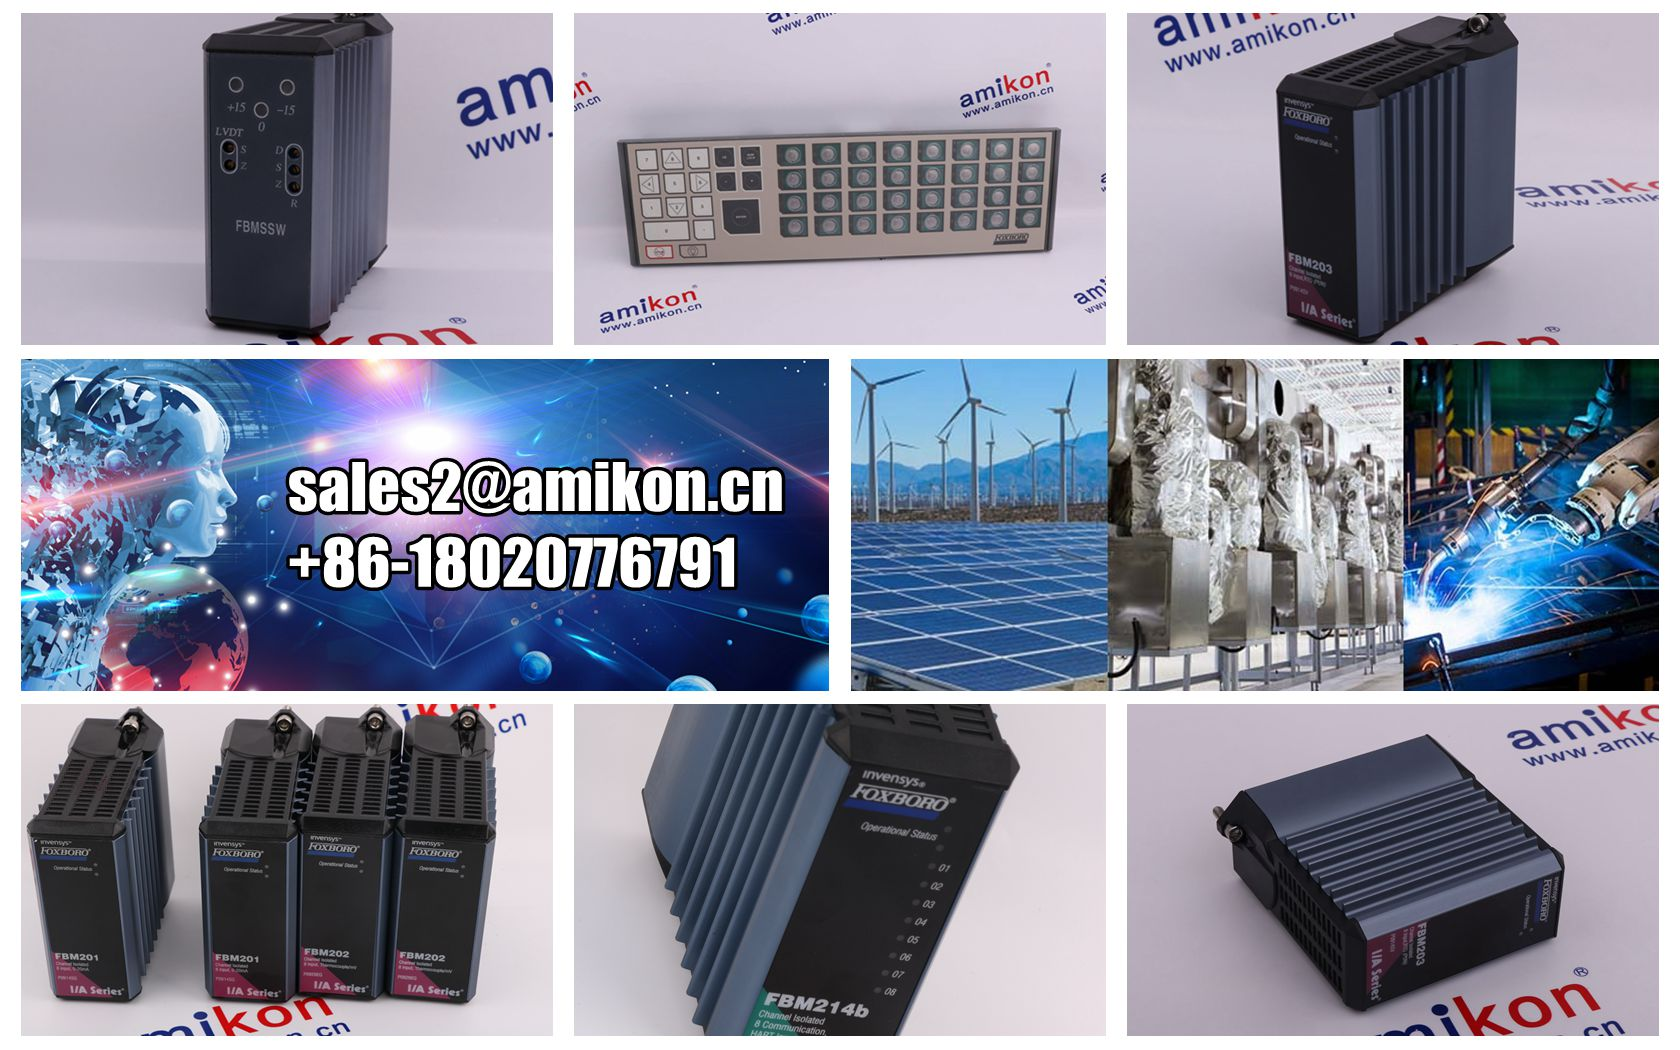 6ES7522-1BL10-0AA0 SIEMENS SIMATIC S7-300 modules SALE PRICE